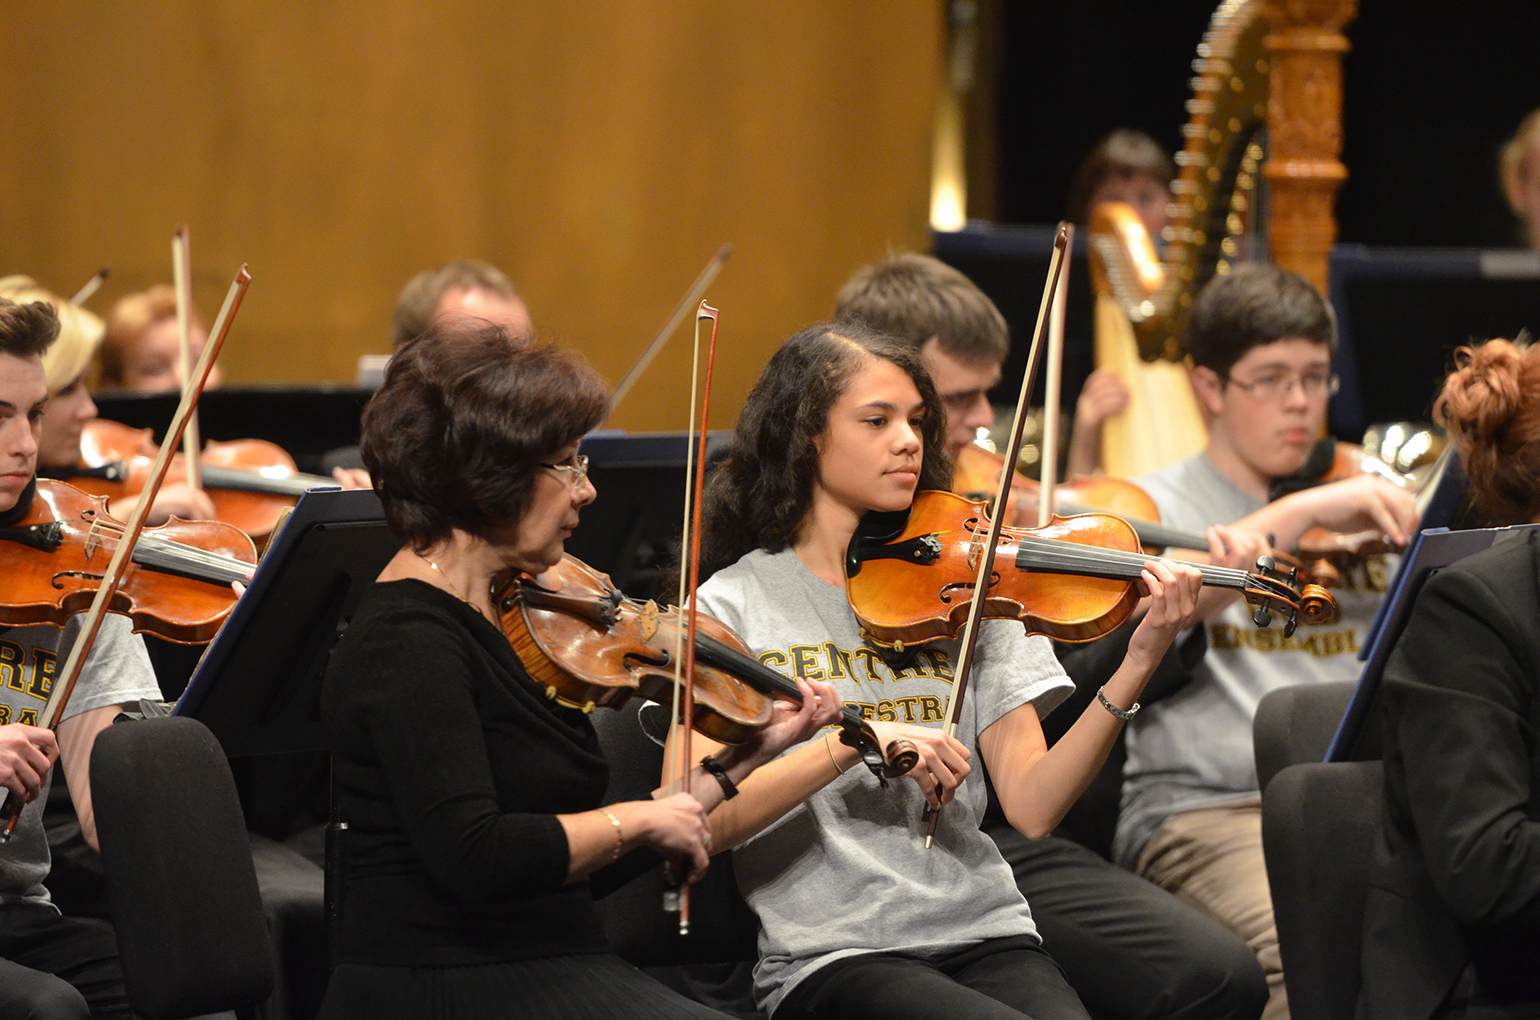 11072014 RSSO Centre Orchestra 034701 - Education